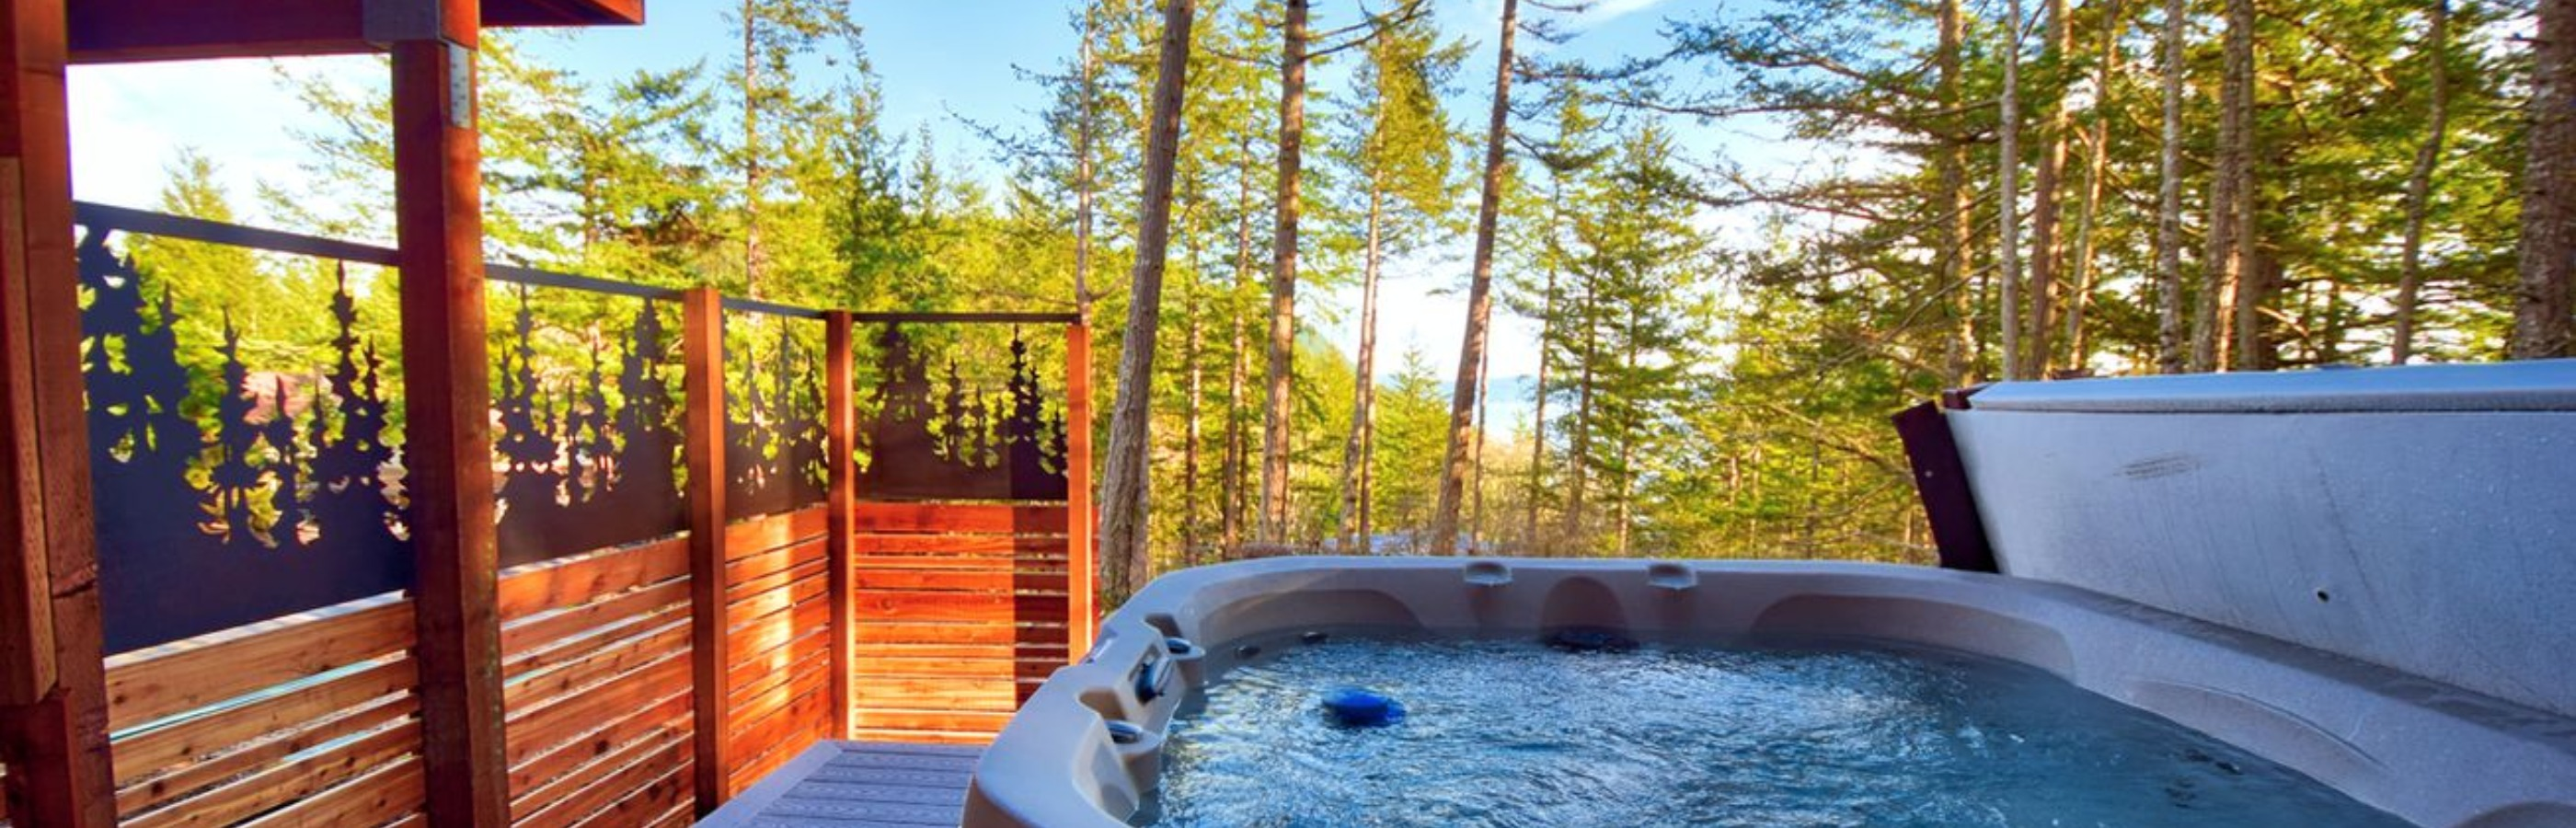 Orcas Island Getaway @ Rosario Sea Views - Hot Tub